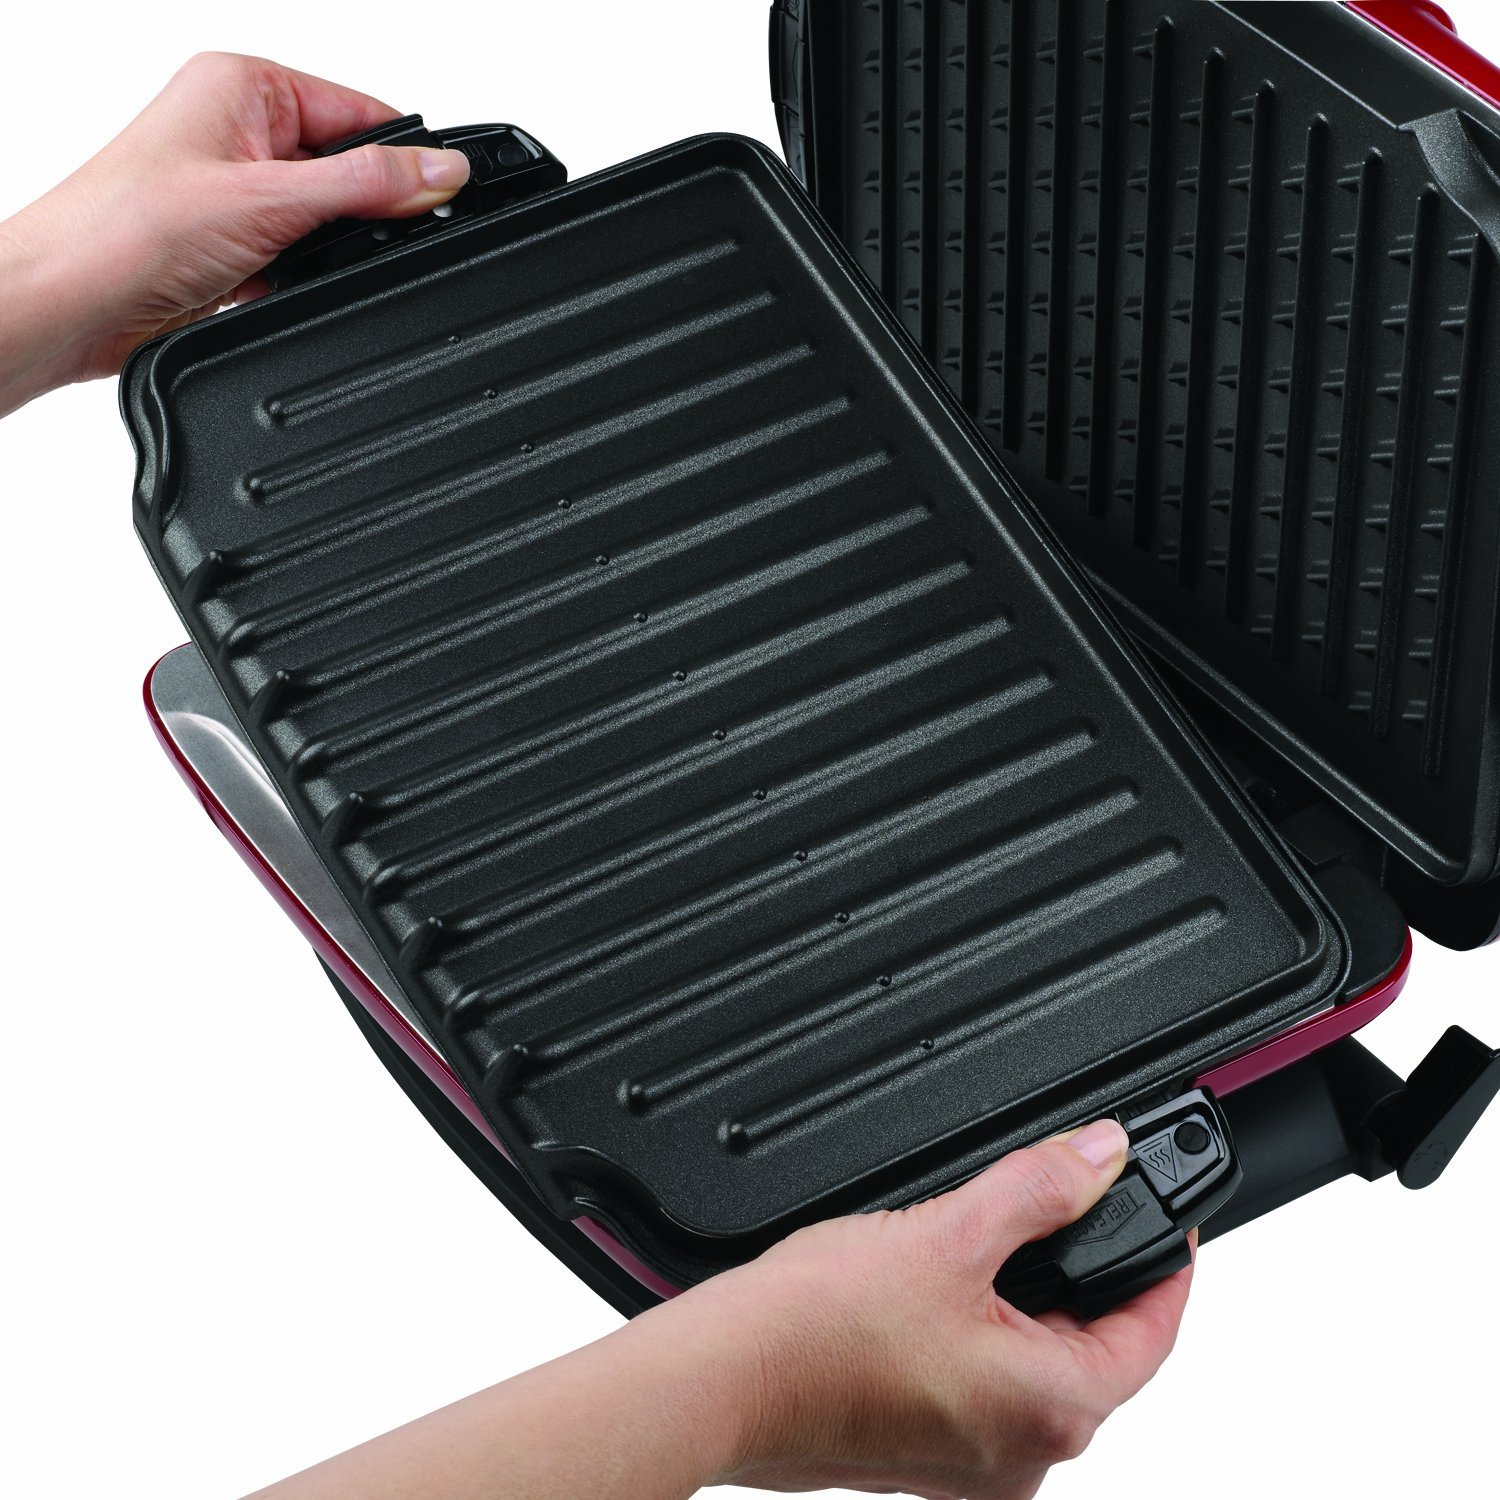 Guinea piggy reviews george foreman g5 grill grp90wgr review - George foreman replacement grill plates ...